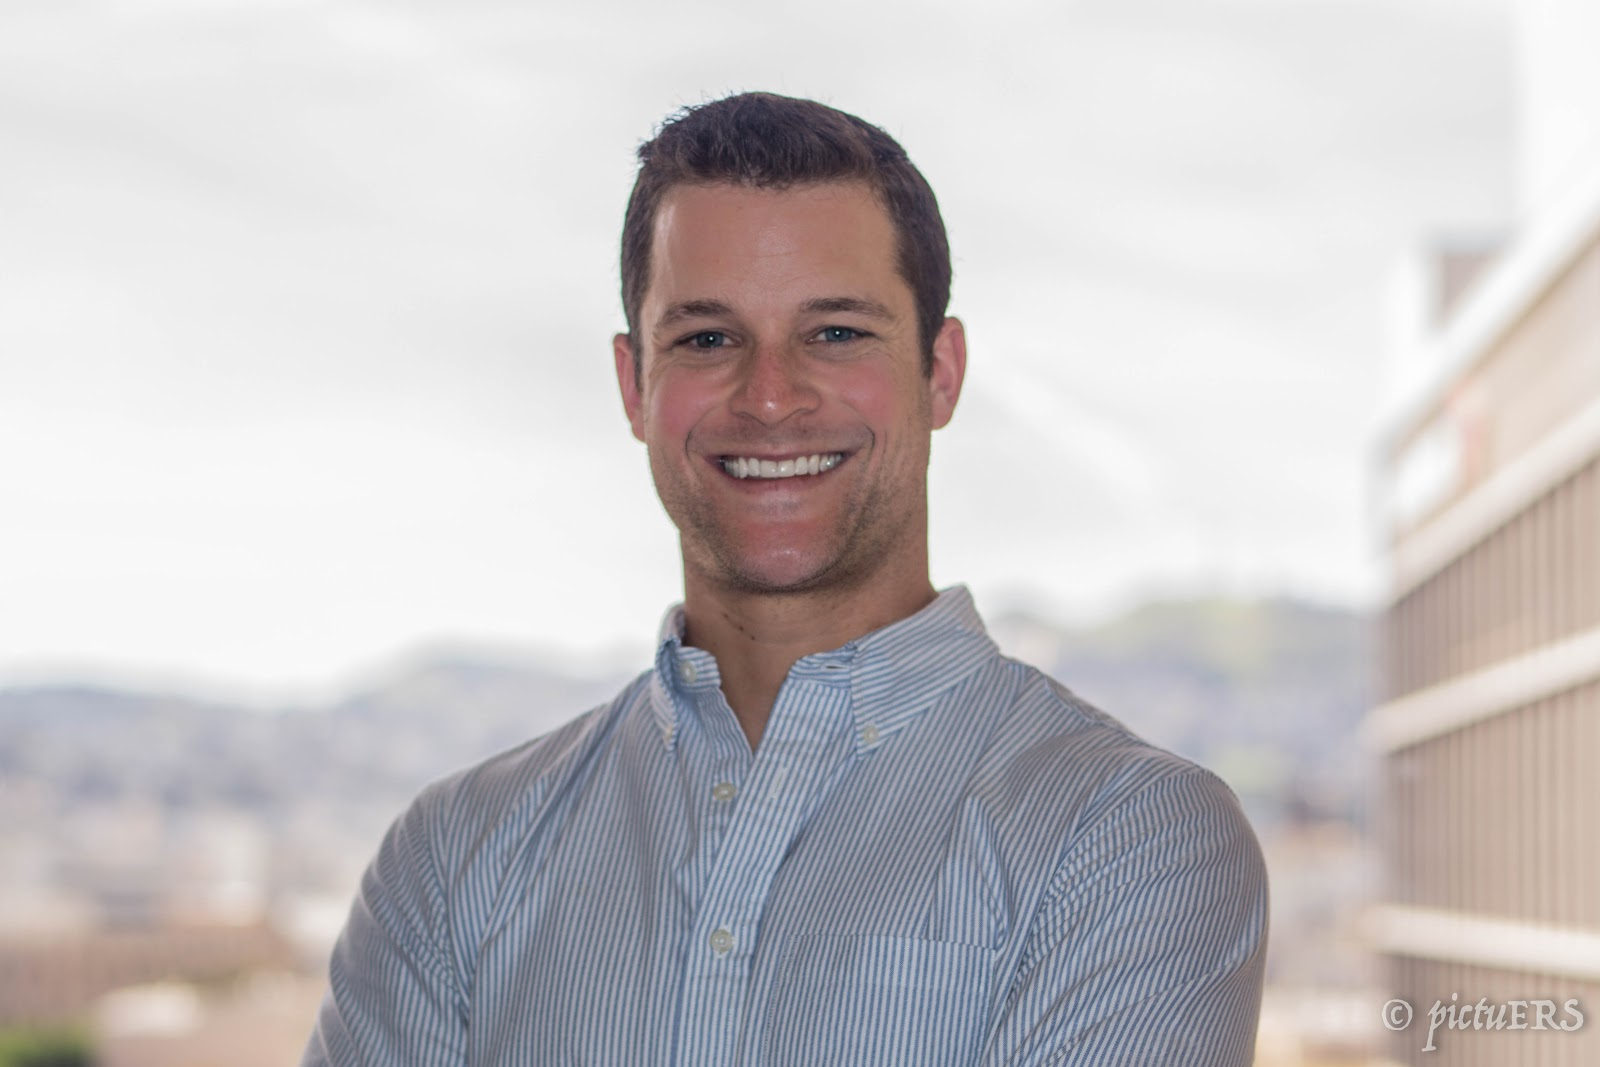 Andrew Berger Built Square's Sales Organization. Here's His Advice on How to Motivate a Sales Team